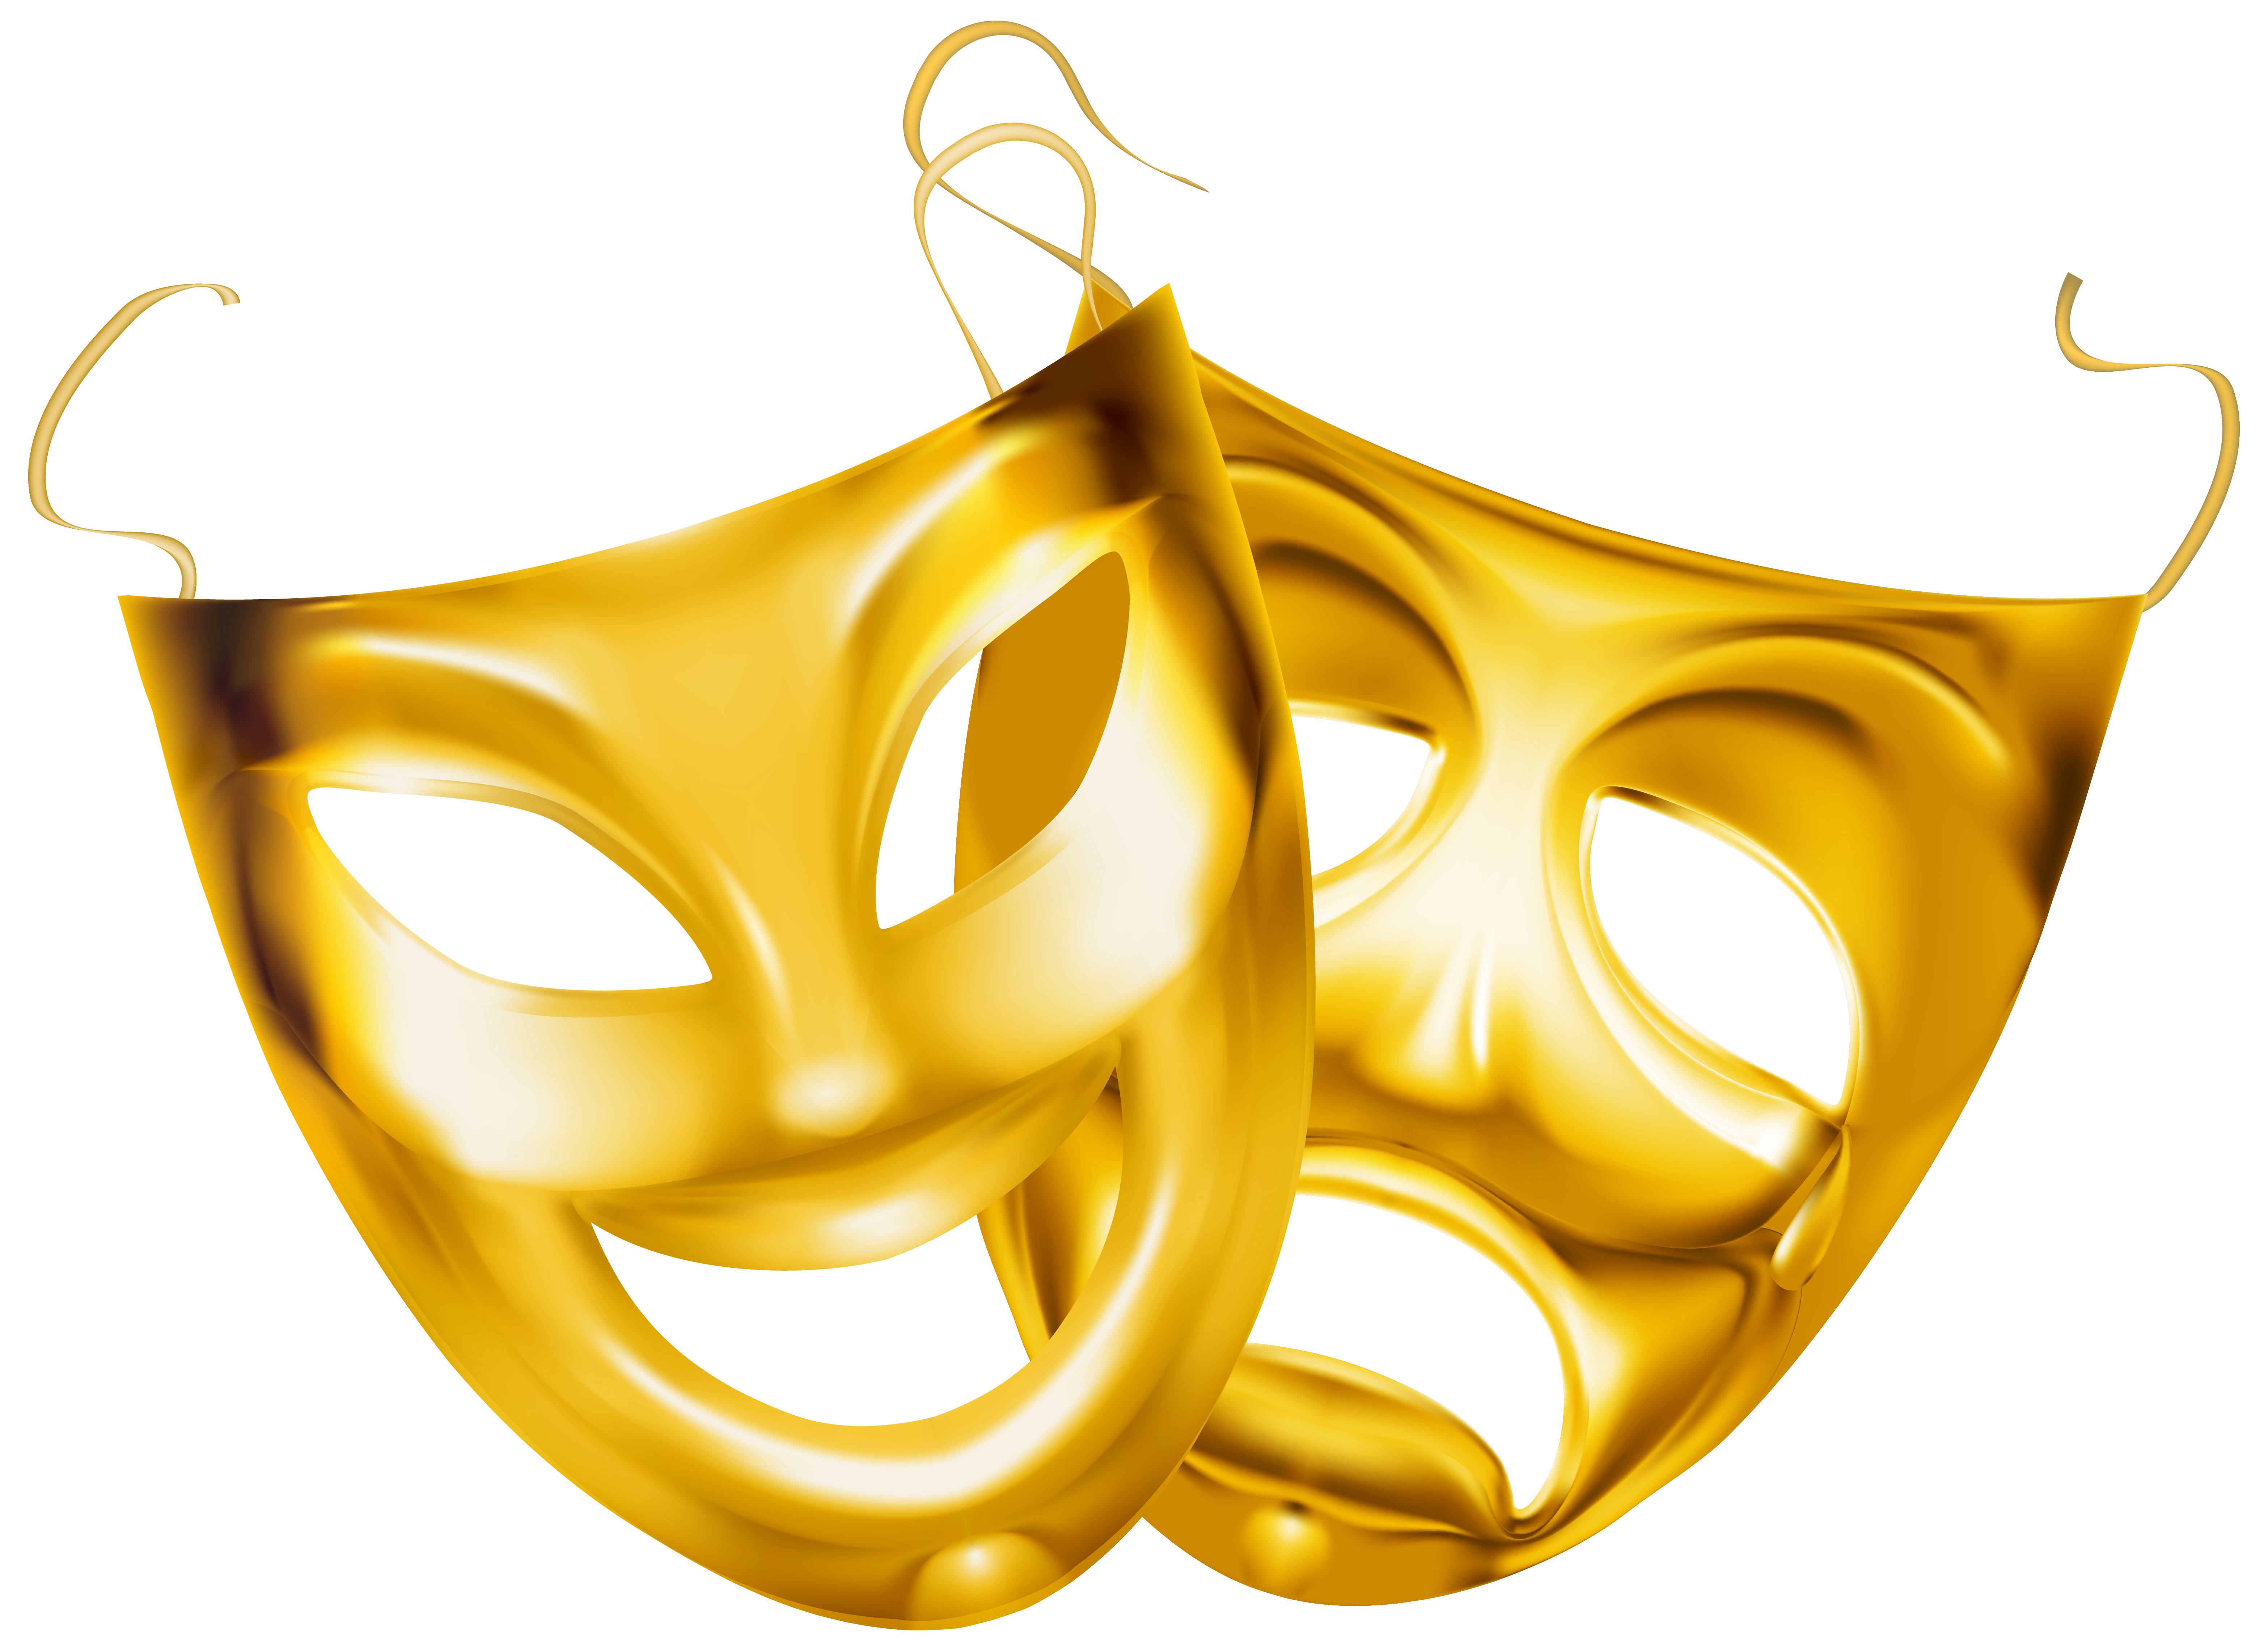 Gold Theater Masks Png Clipart Image Gallery Yopriceville High Quality Images And Transparent Png Free Clipart Theatre Masks Clip Art Free Clip Art